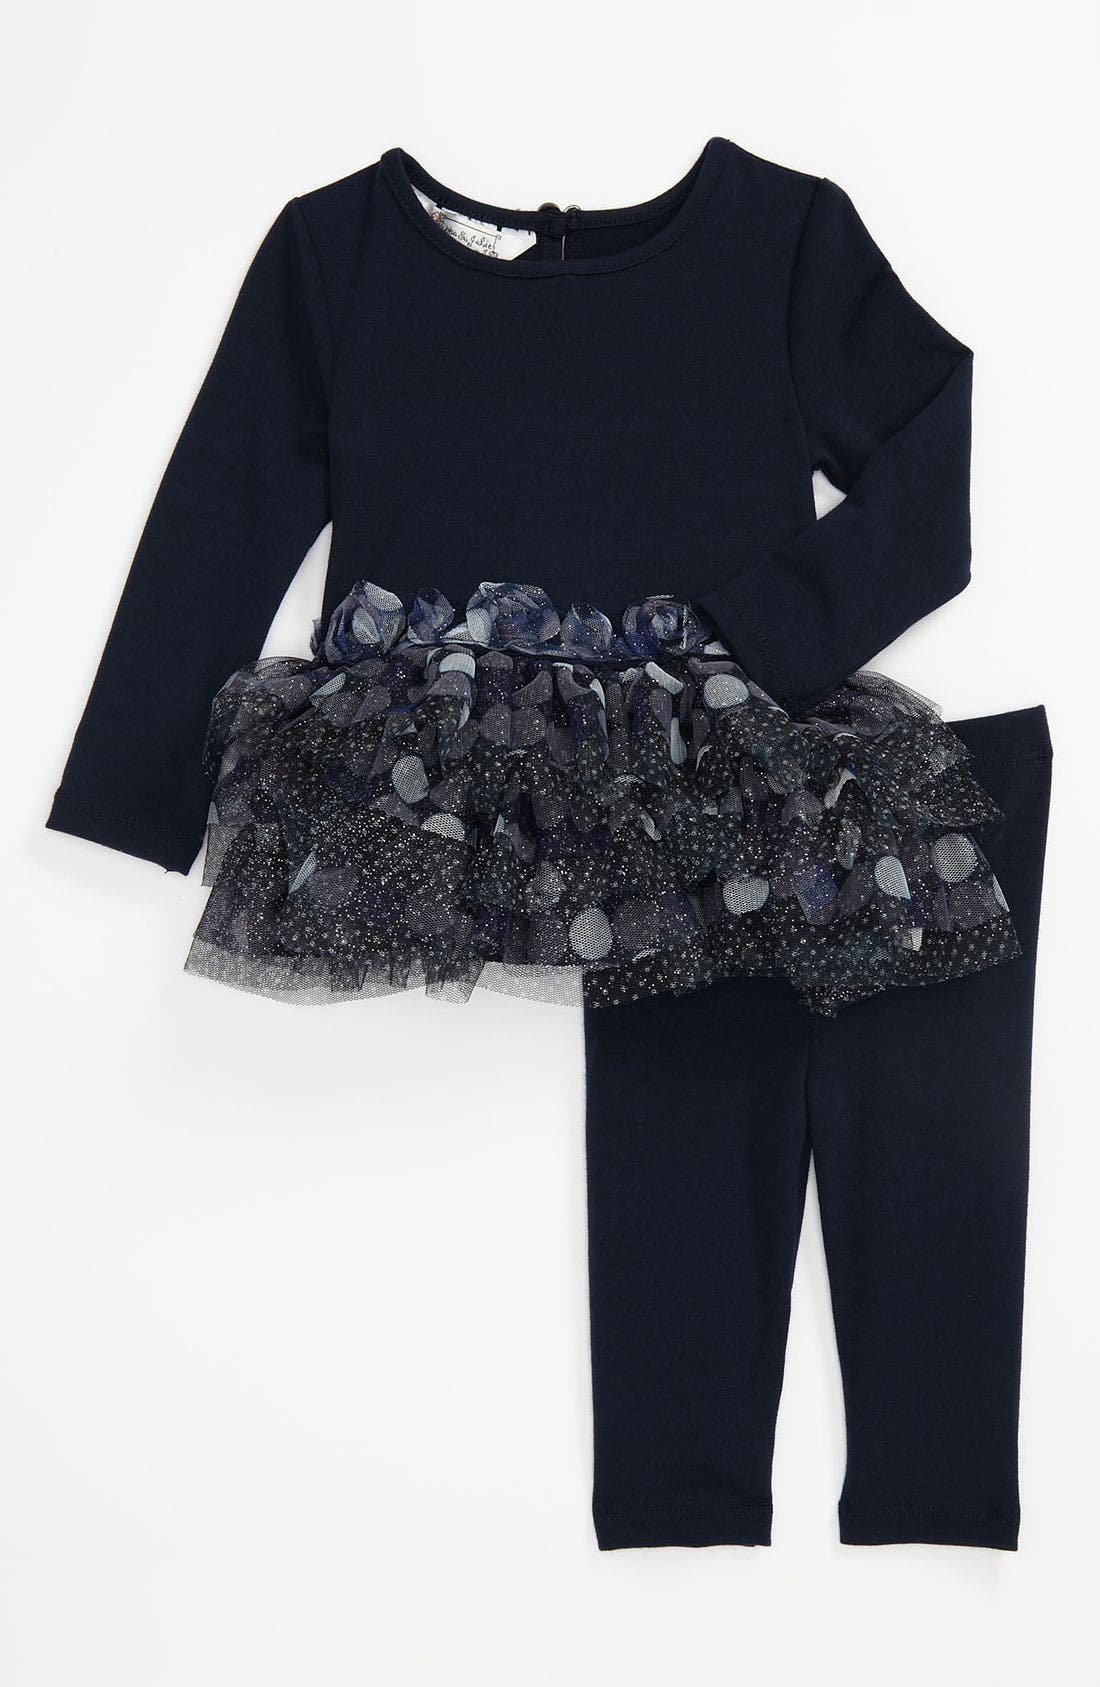 Alternate Image 1 Selected - Pippa & Julie Knit Top & Leggings (Infant)